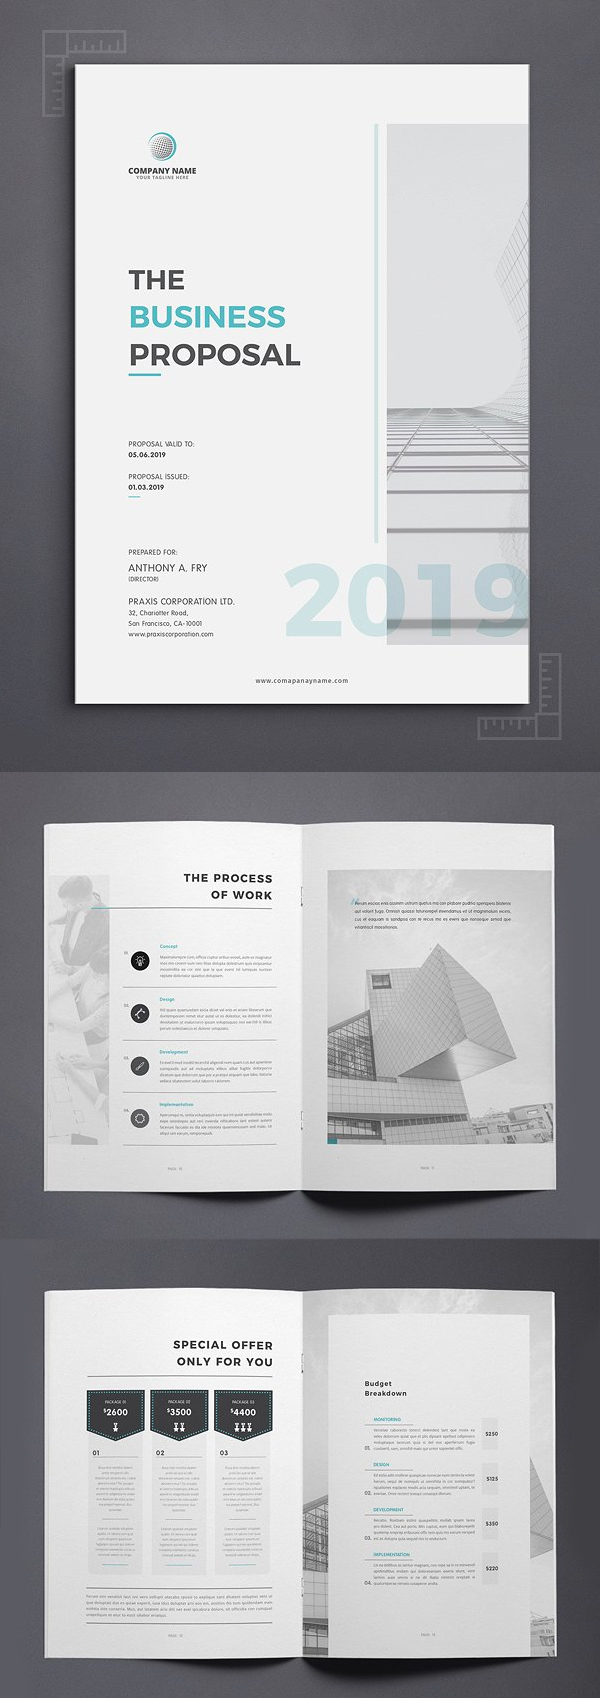 Professional Proposal Template | Business Proposal Templates Design Graphic Design Junction